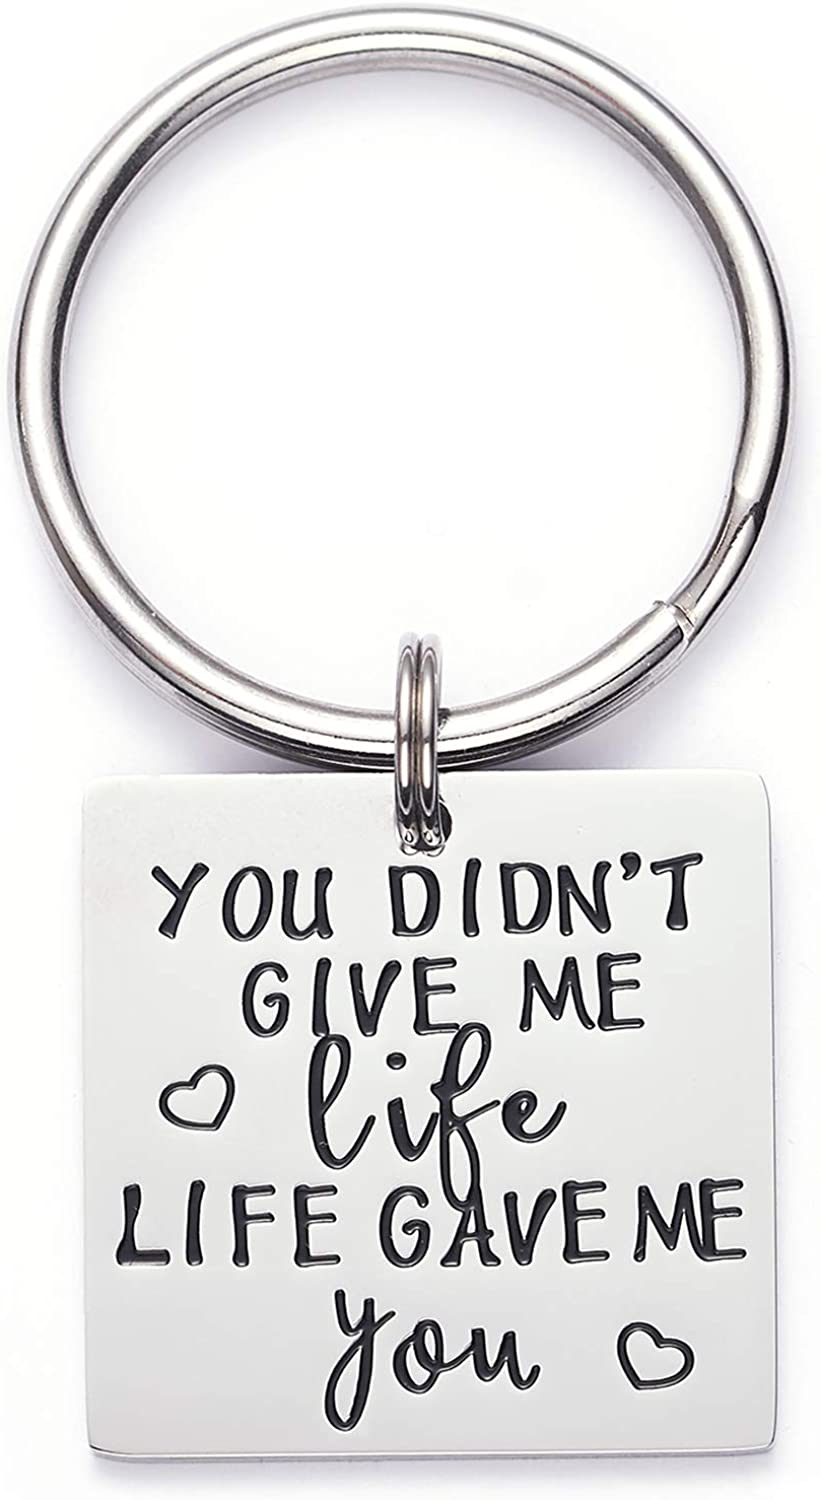 Best StepMom Ever! Personalized Free Step Mom Keychain Gift Simple and Pretty